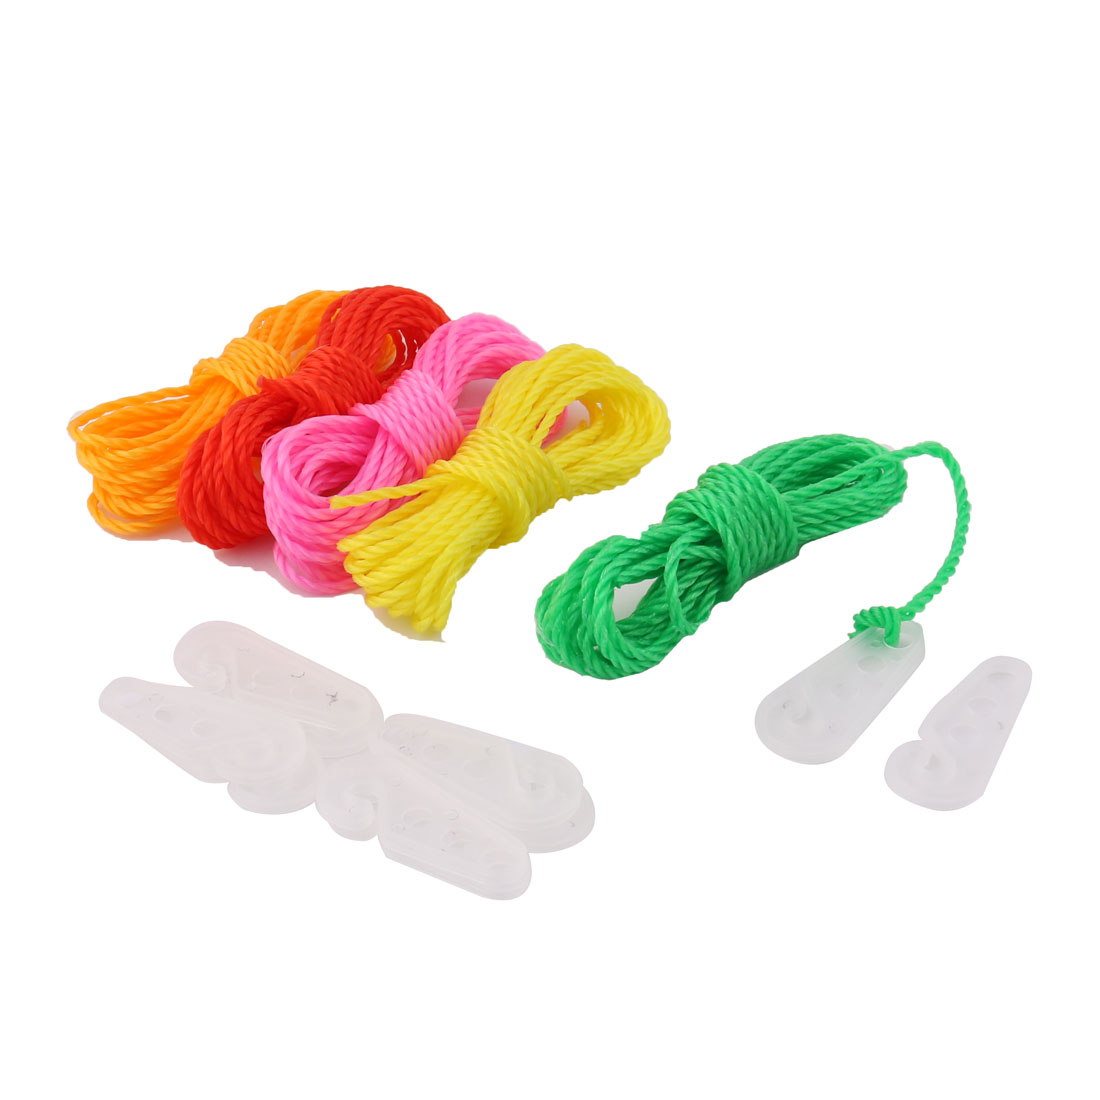 Apartment Home Nylon Windproof Clothesline Clothes Hanging Rope String Line 5pcs